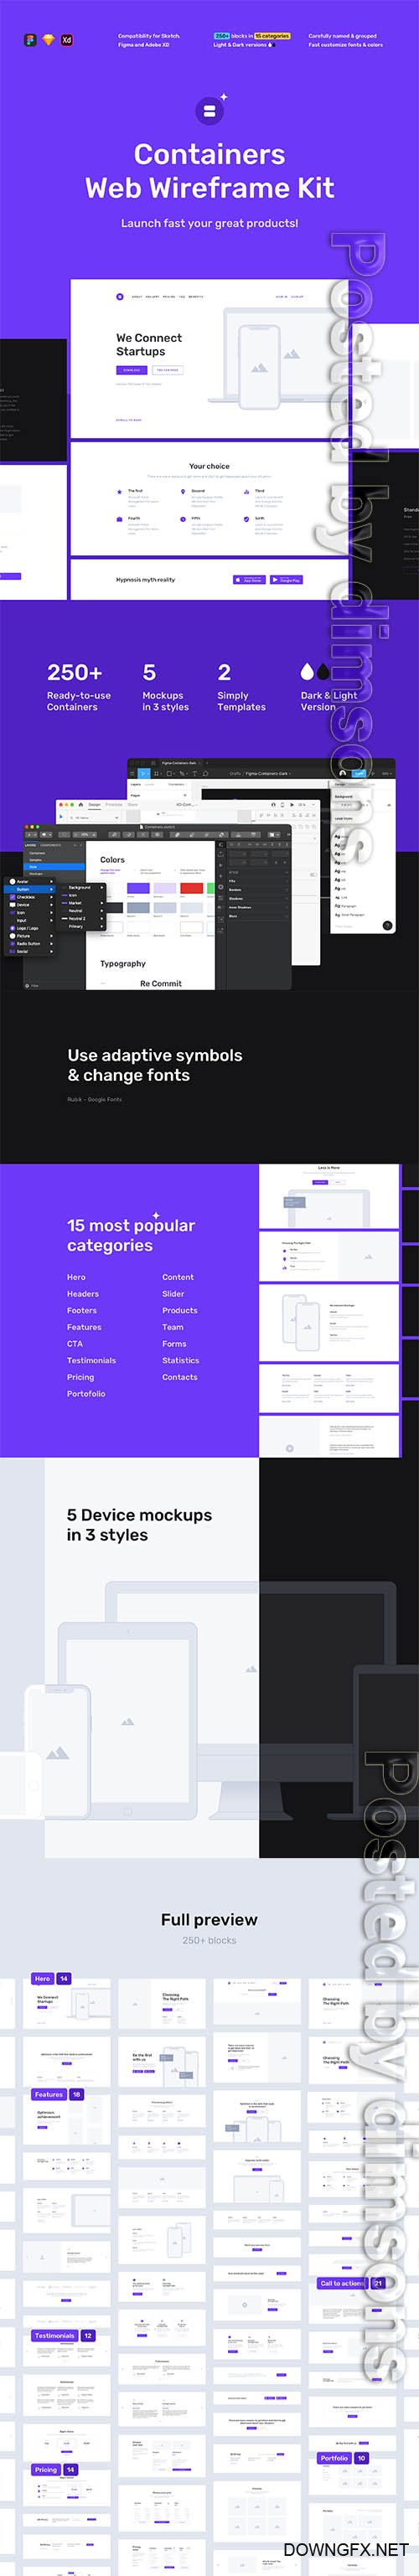 Containers Web Wireframe Kit